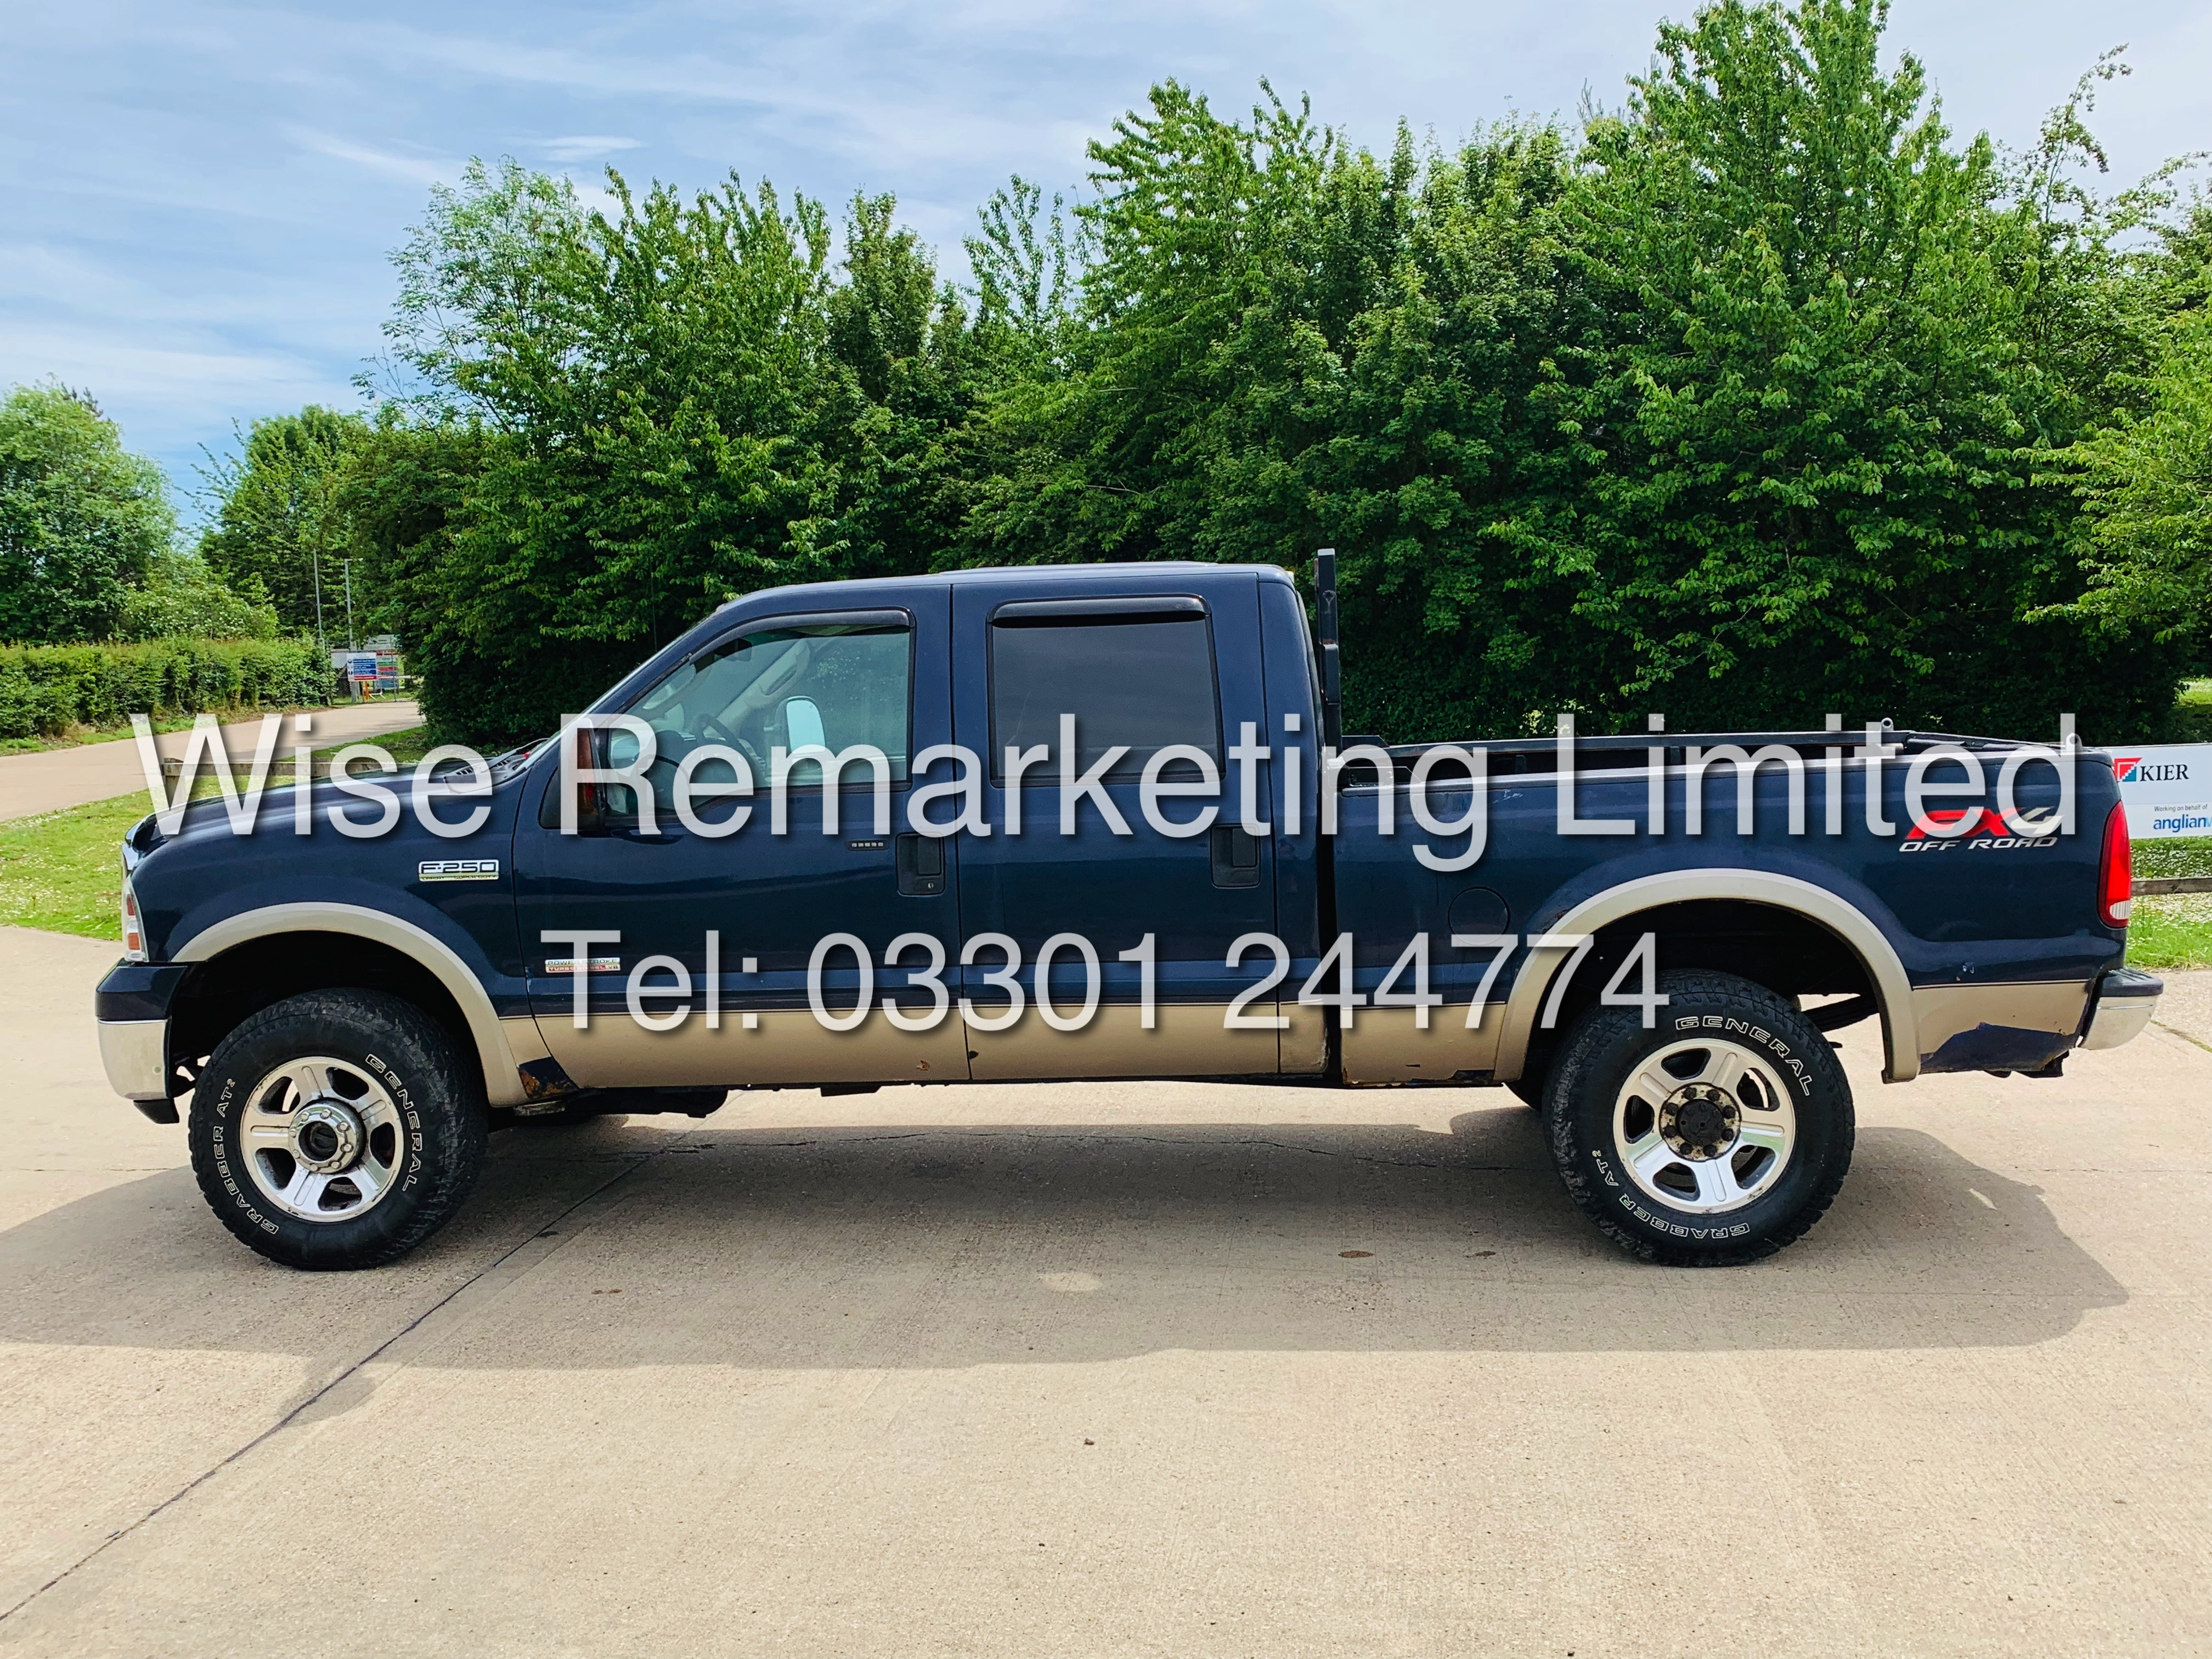 FORD F-250 6.0L V8**DIESEL**2007**4X4*LARIAT SPEC**DOUBLE-CAB**ULTRA RARE**FRESH IMPORT** - Image 7 of 18